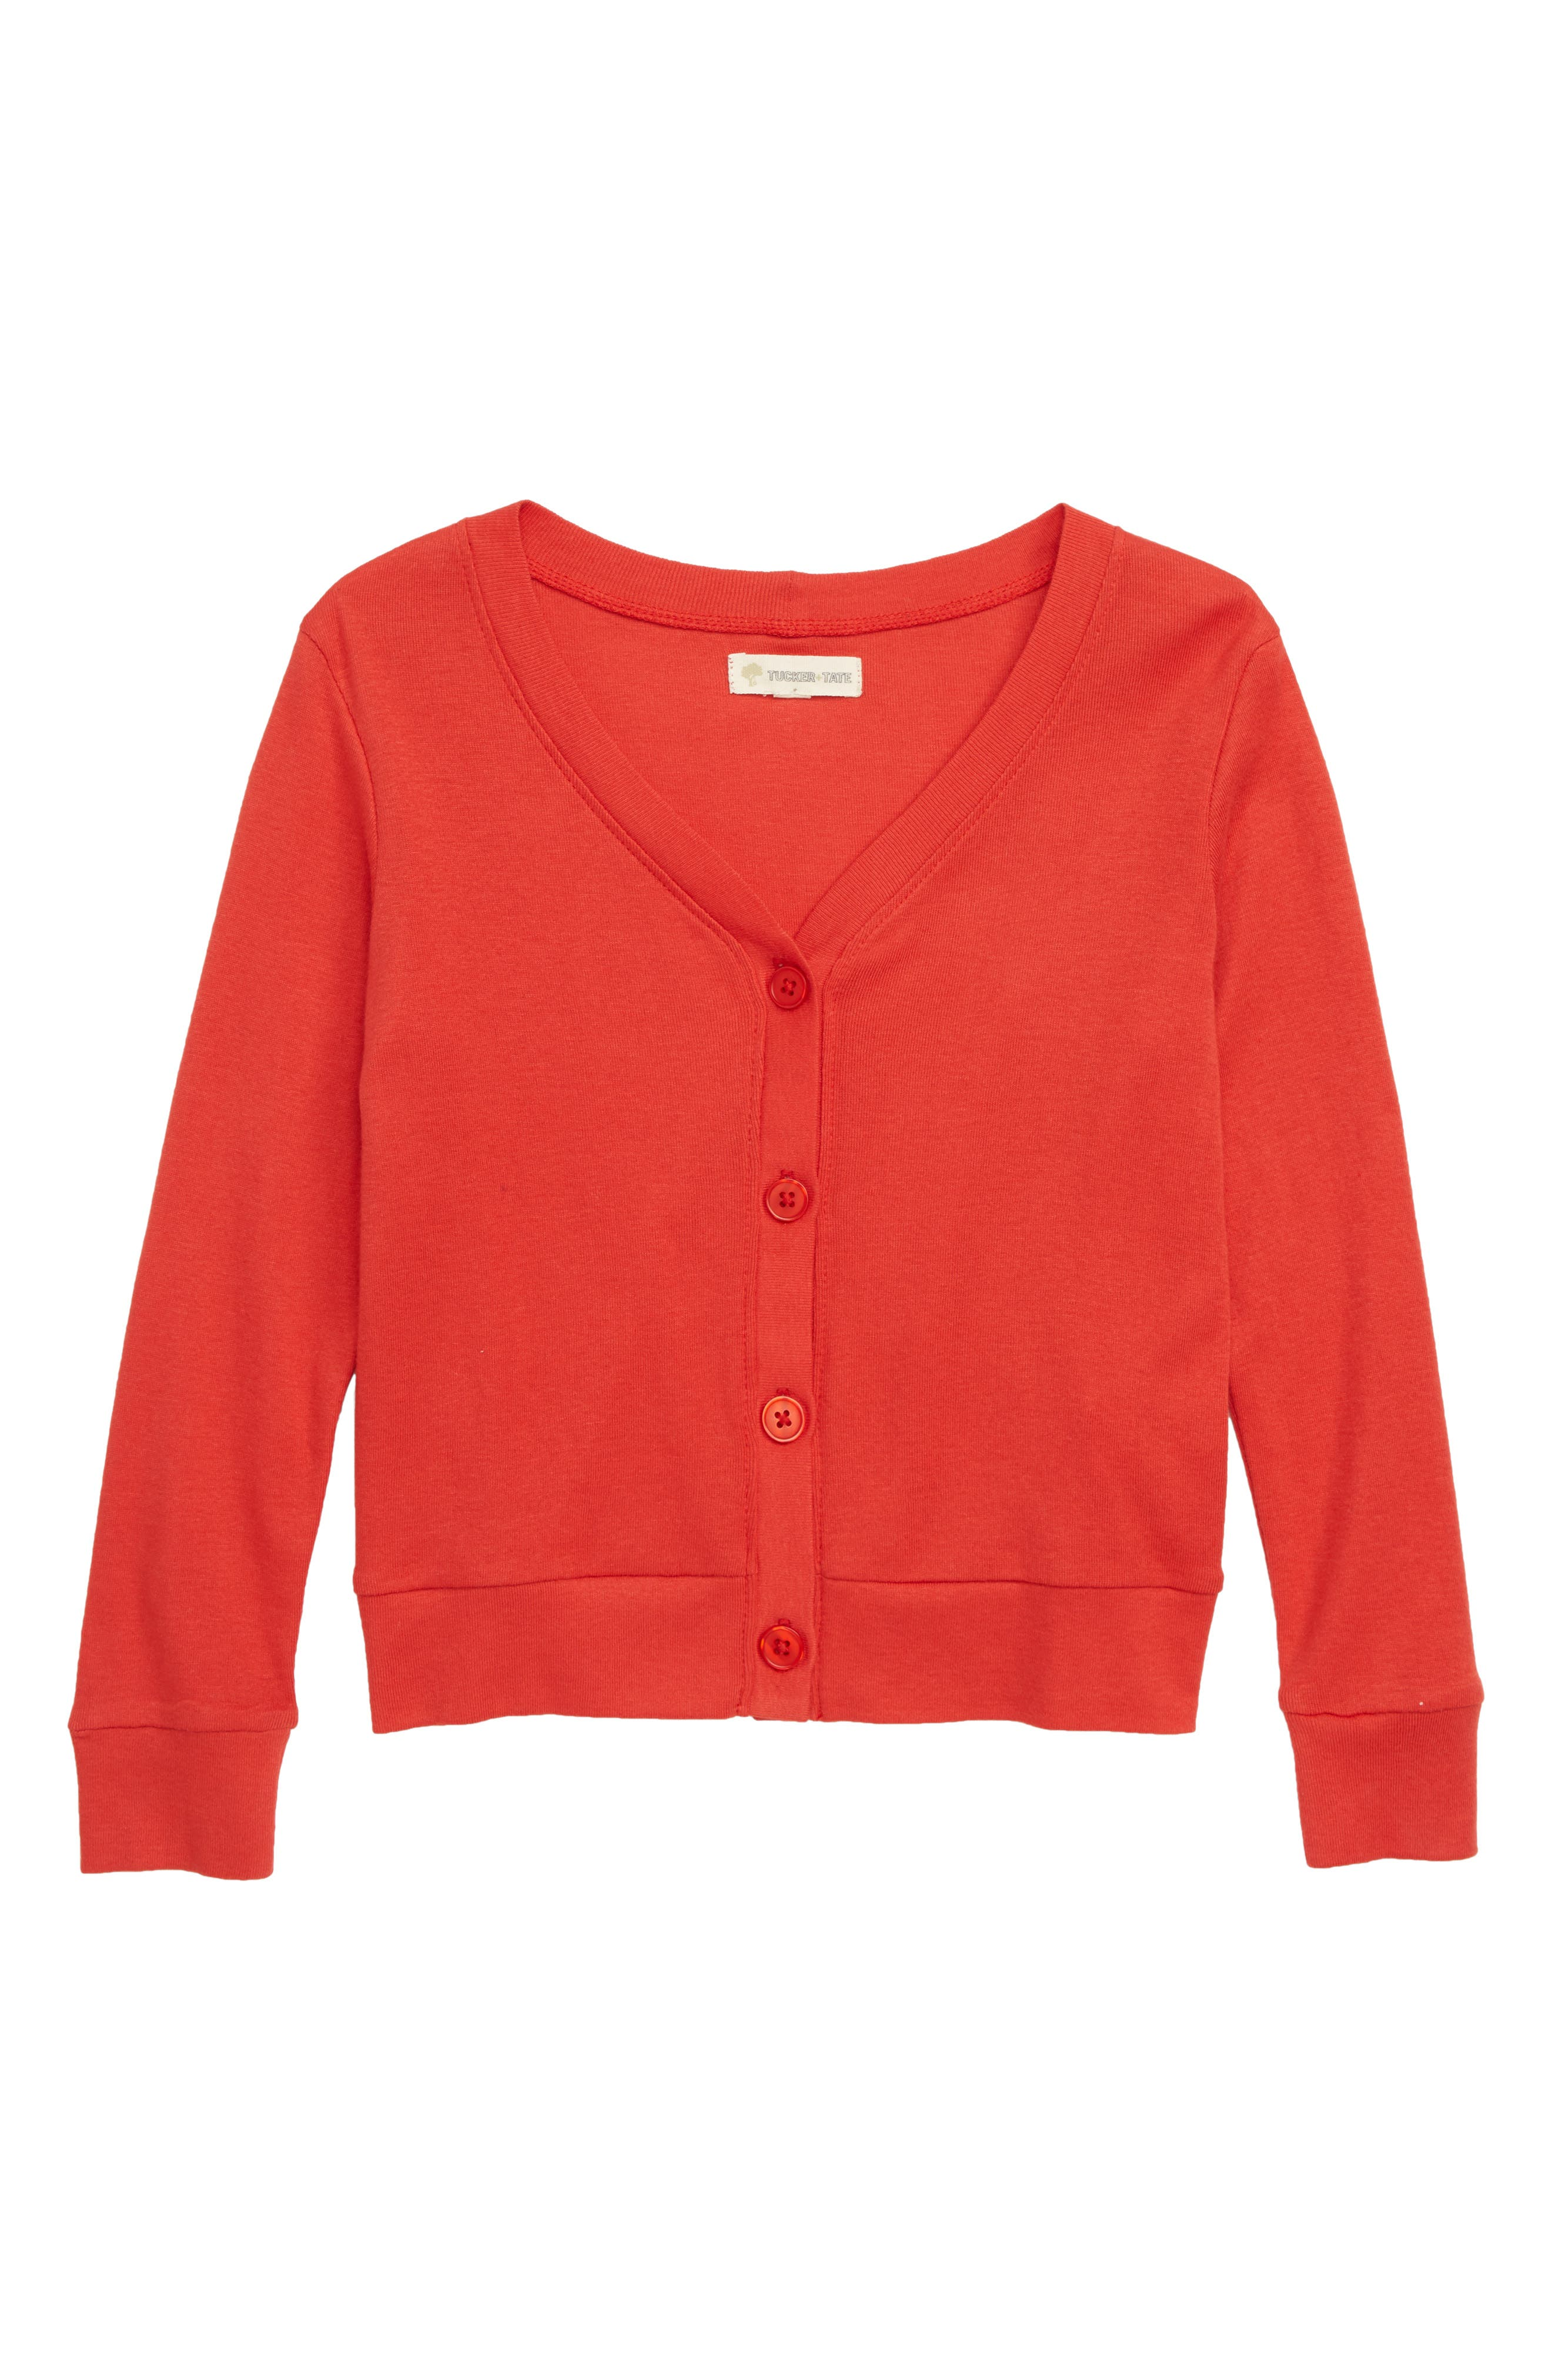 Toddler Girls Tucker  Tate Everyday Ribbed Cardigan Size 3T  Red